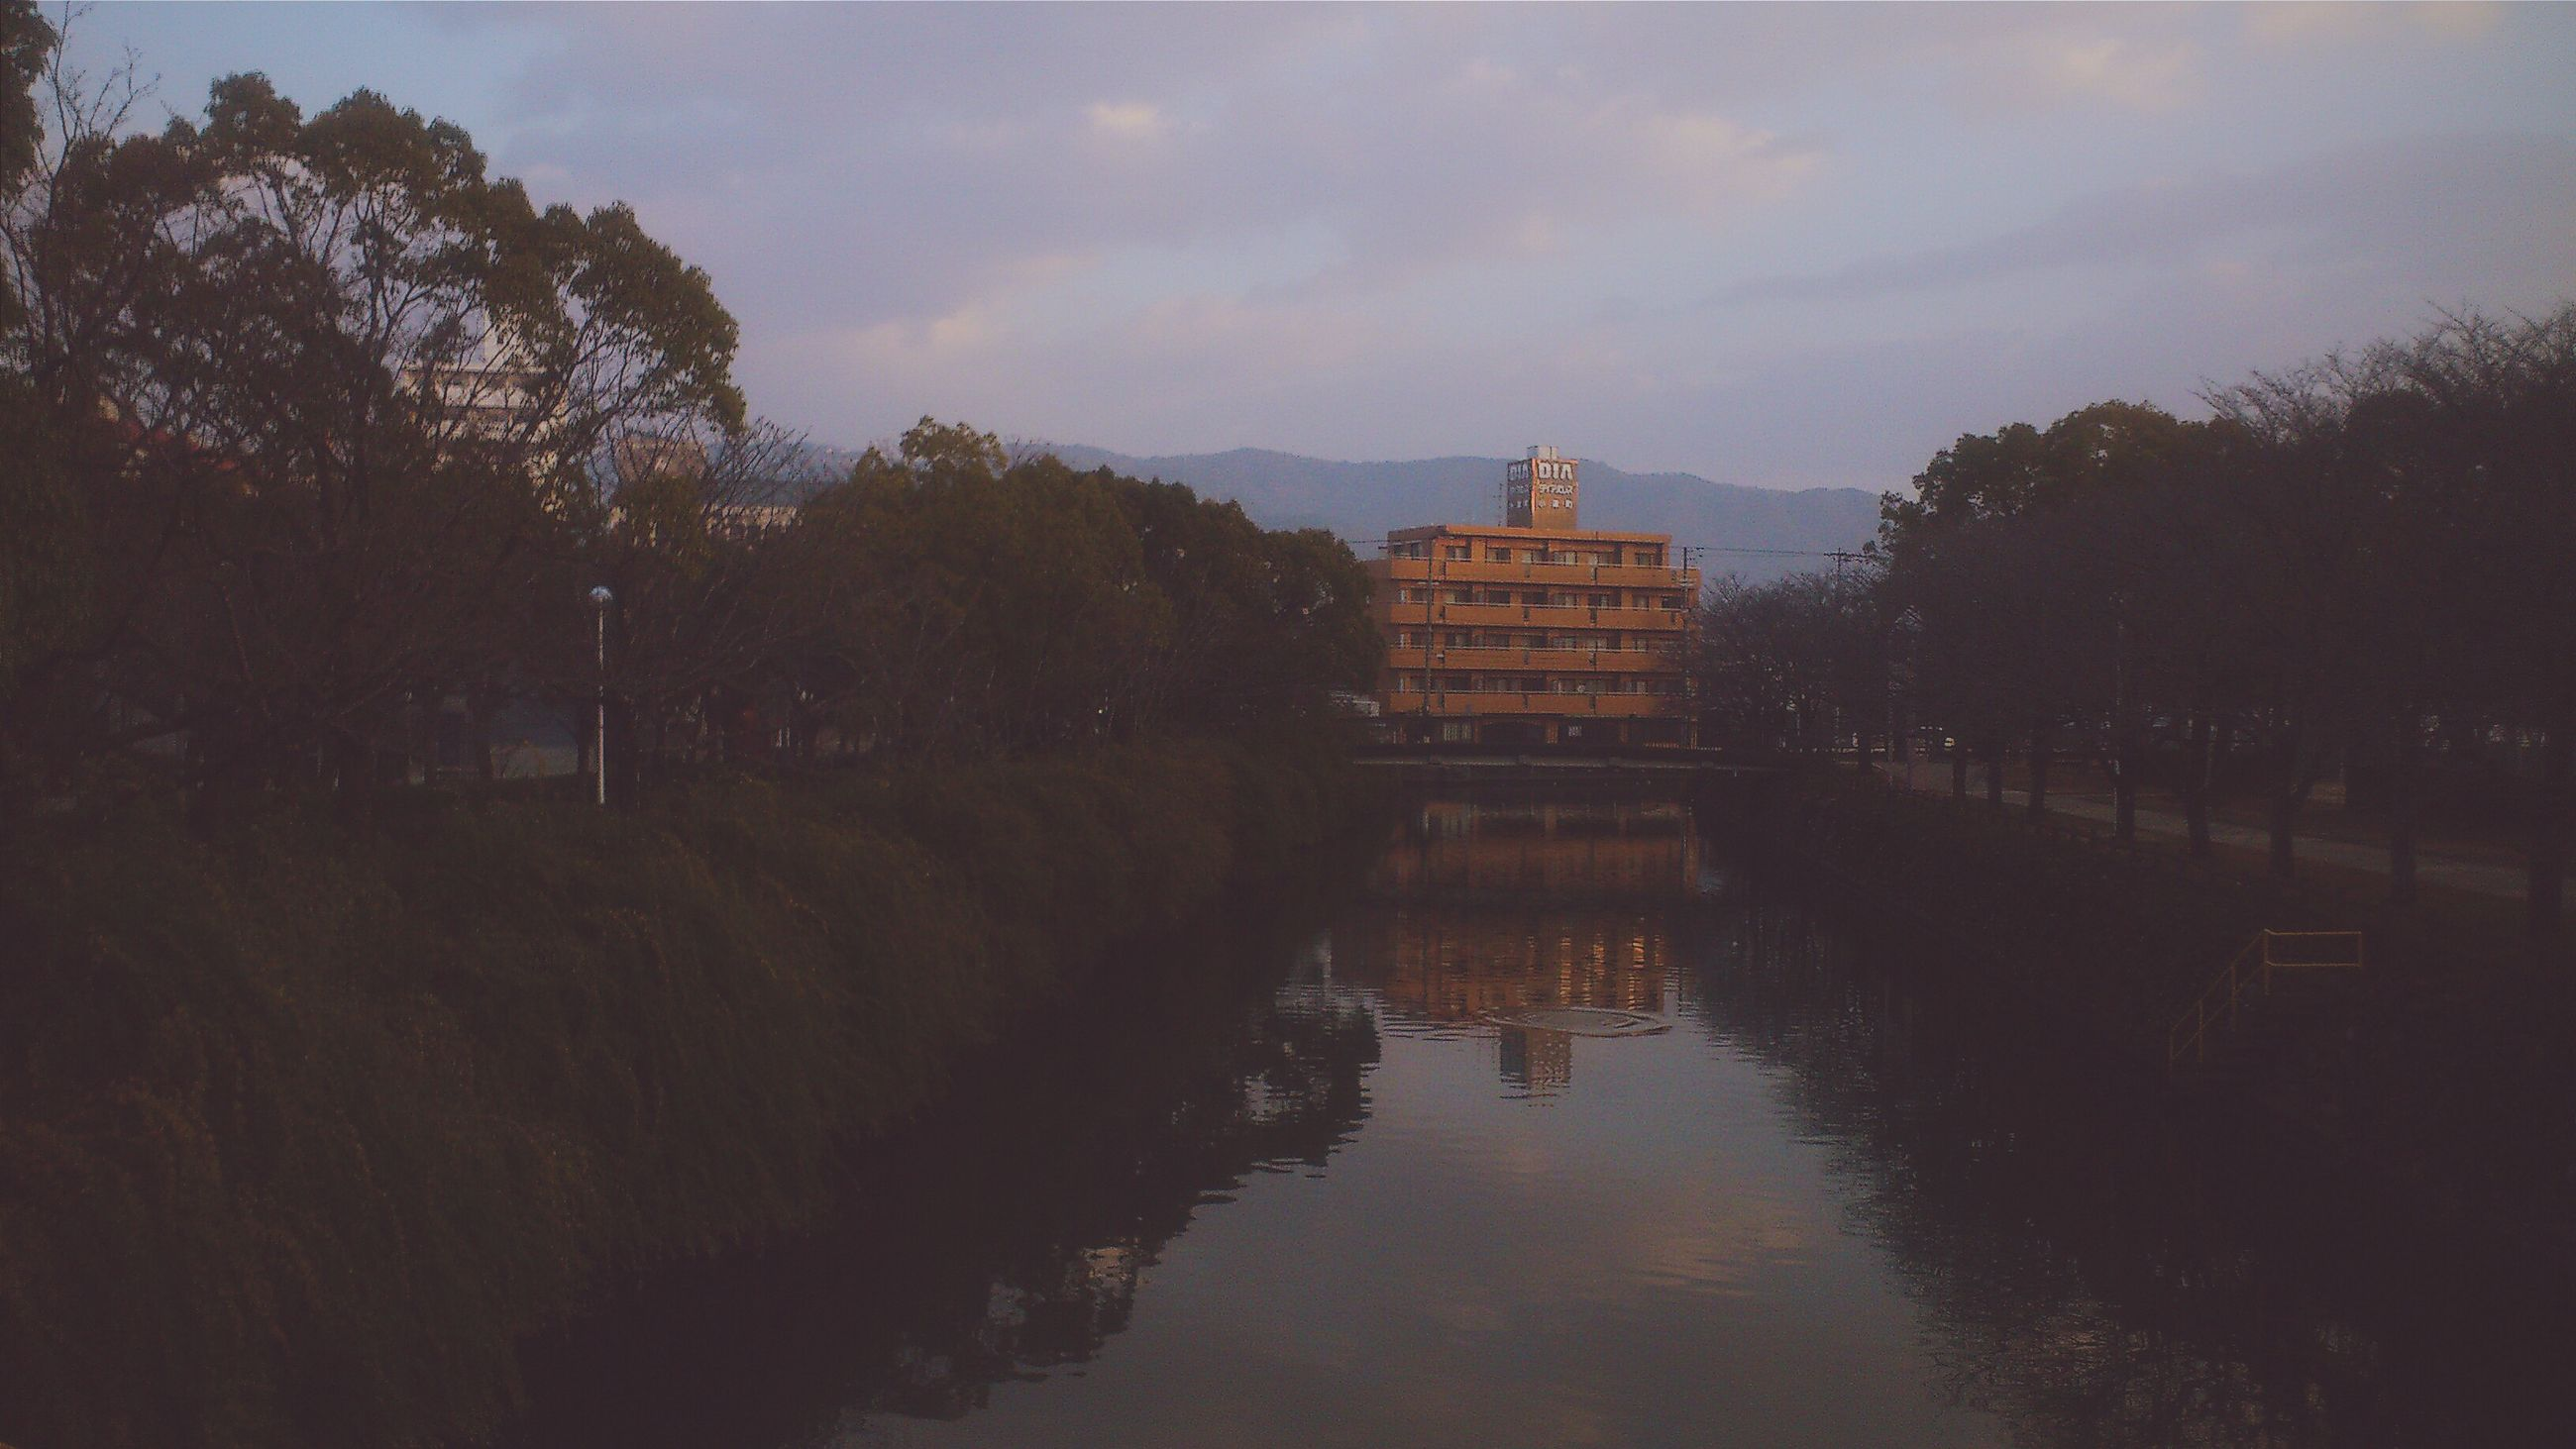 architecture, built structure, building exterior, tree, sky, water, reflection, cloud - sky, waterfront, religion, famous place, place of worship, travel destinations, spirituality, river, tower, history, tourism, dusk, sunset